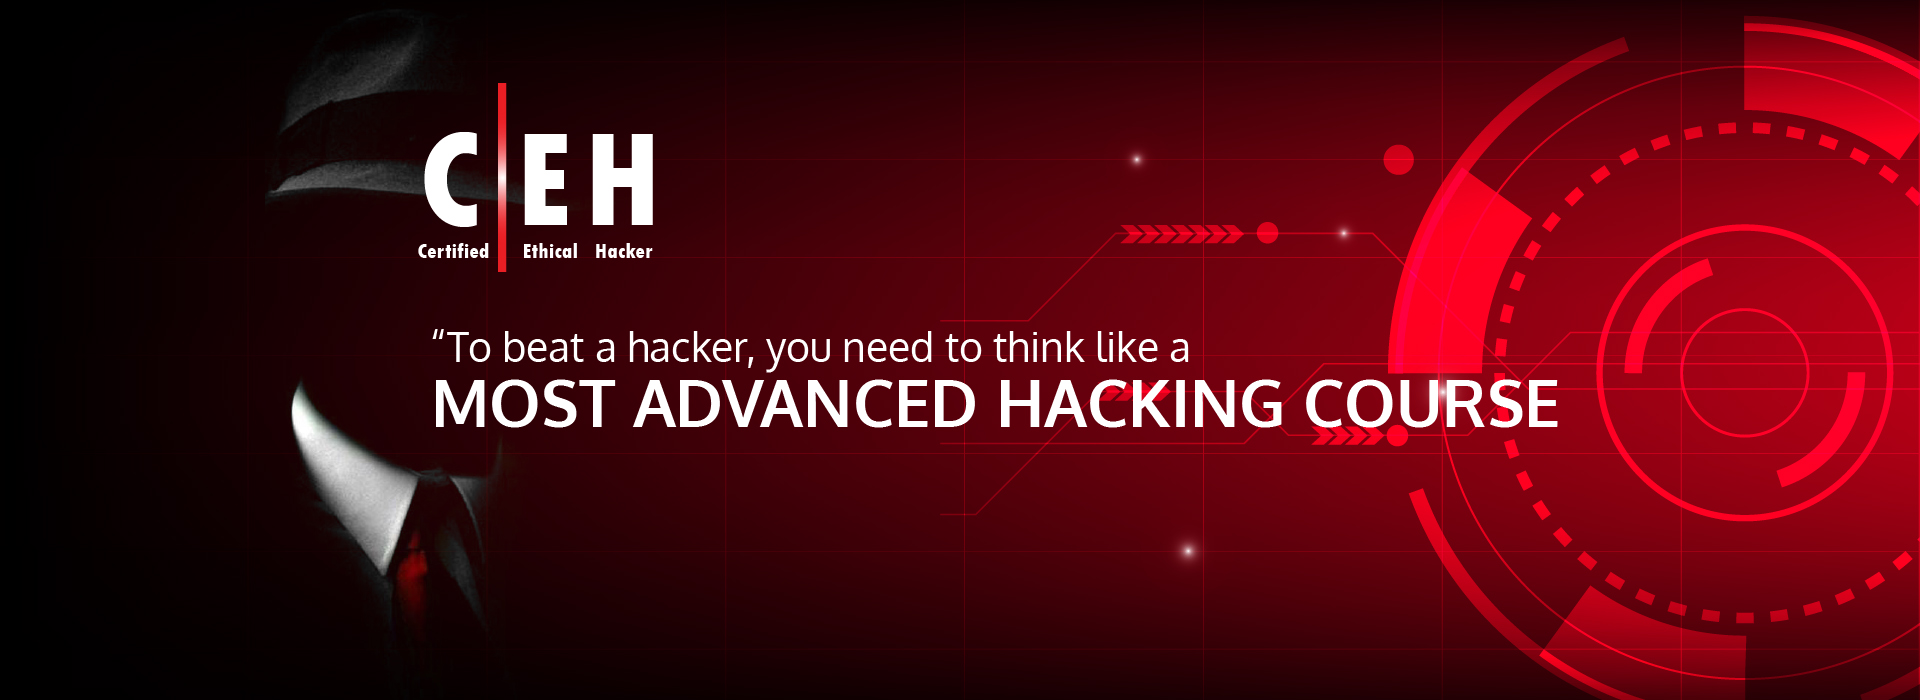 Ceh ethical hacking training course in lahore pakistan cyber certified ethical hacking cehv10 course in lahore pakistan 1betcityfo Images